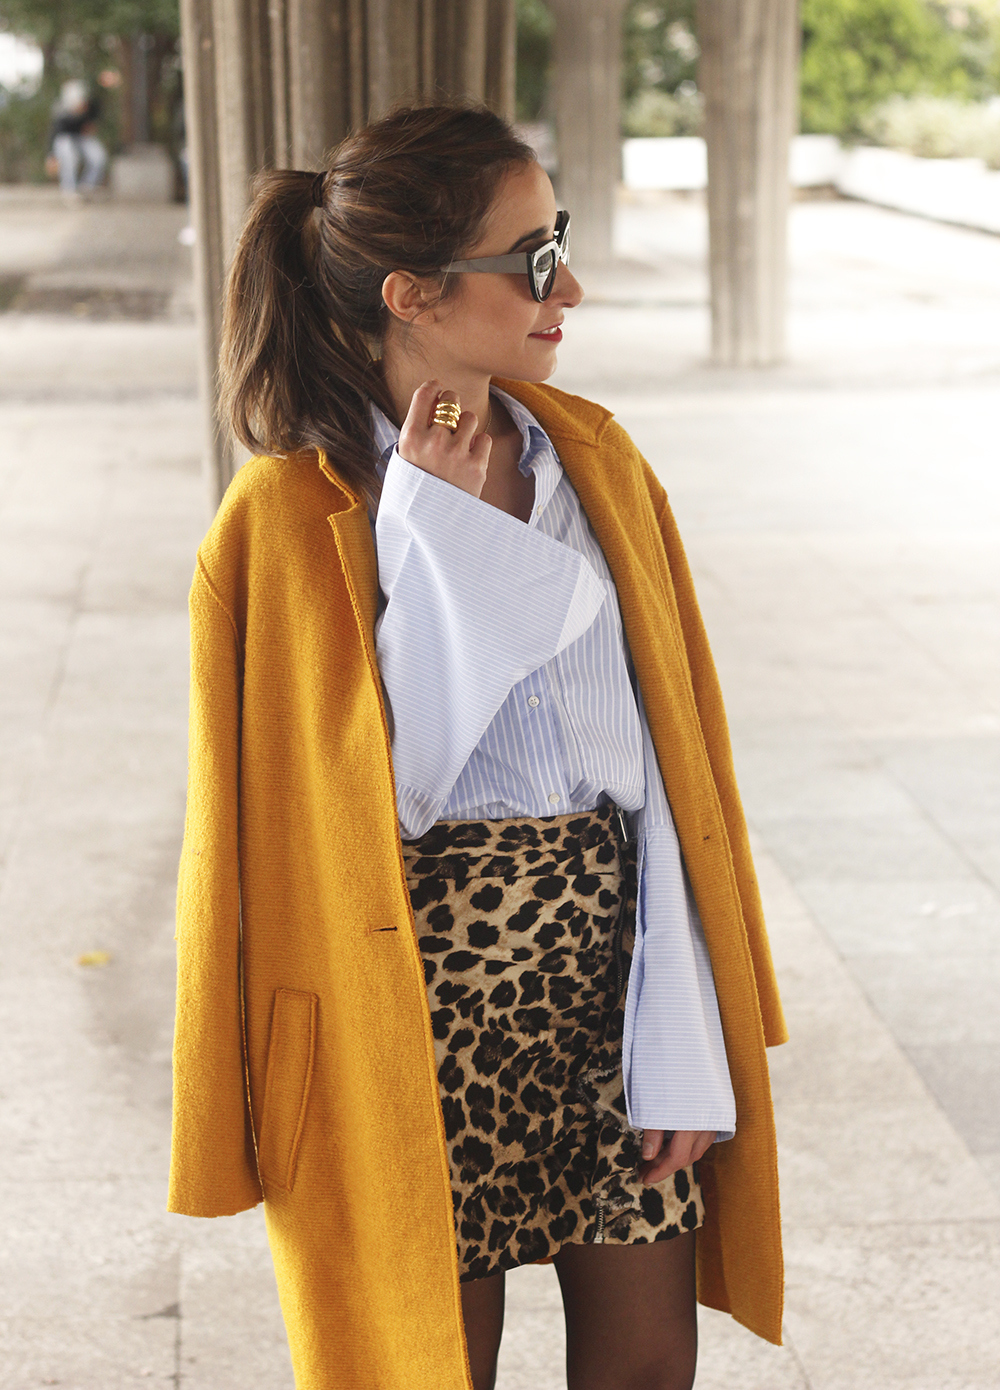 Leopard Skirt striped shirt black heels mustard coat fall outfit style fashion14